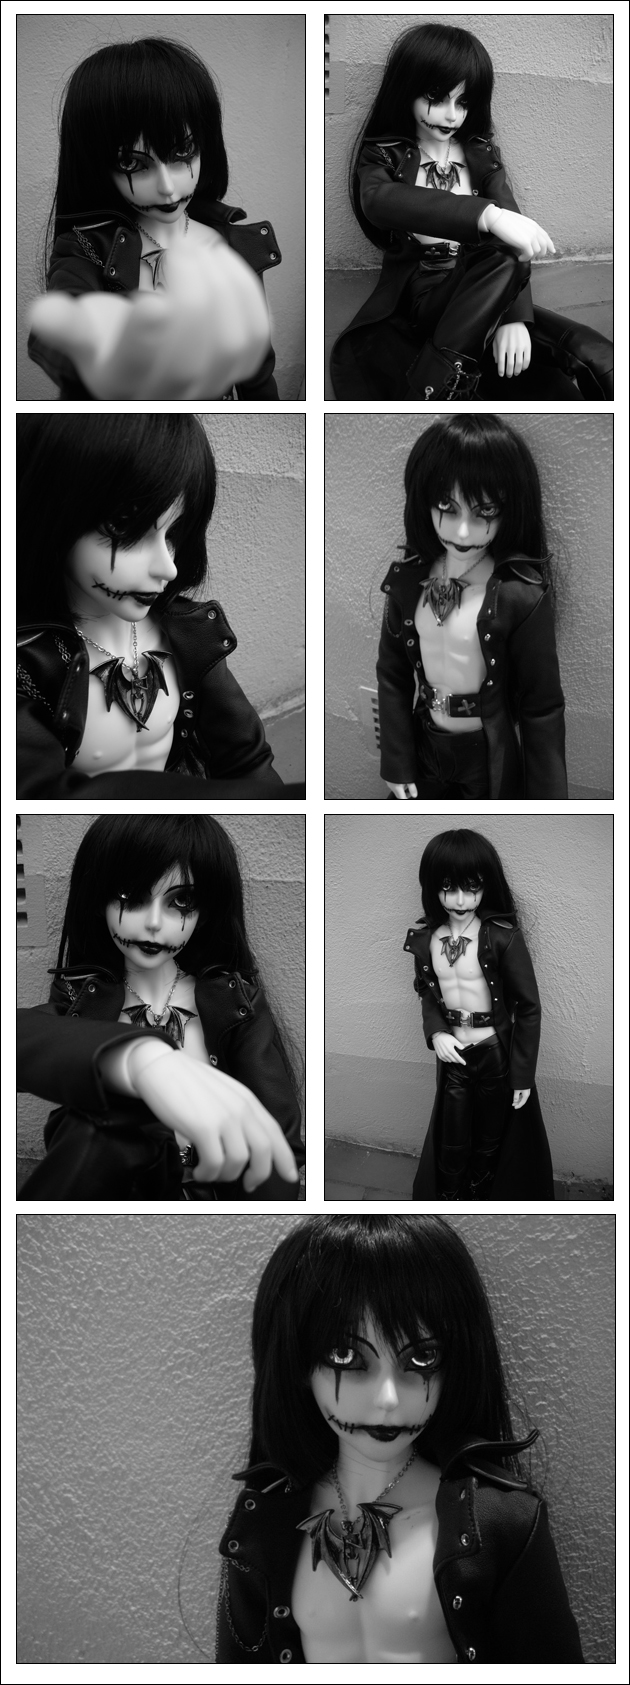 [DeadDoll][Mnf DES] Family - portraits [p.24] Jackdunkerque